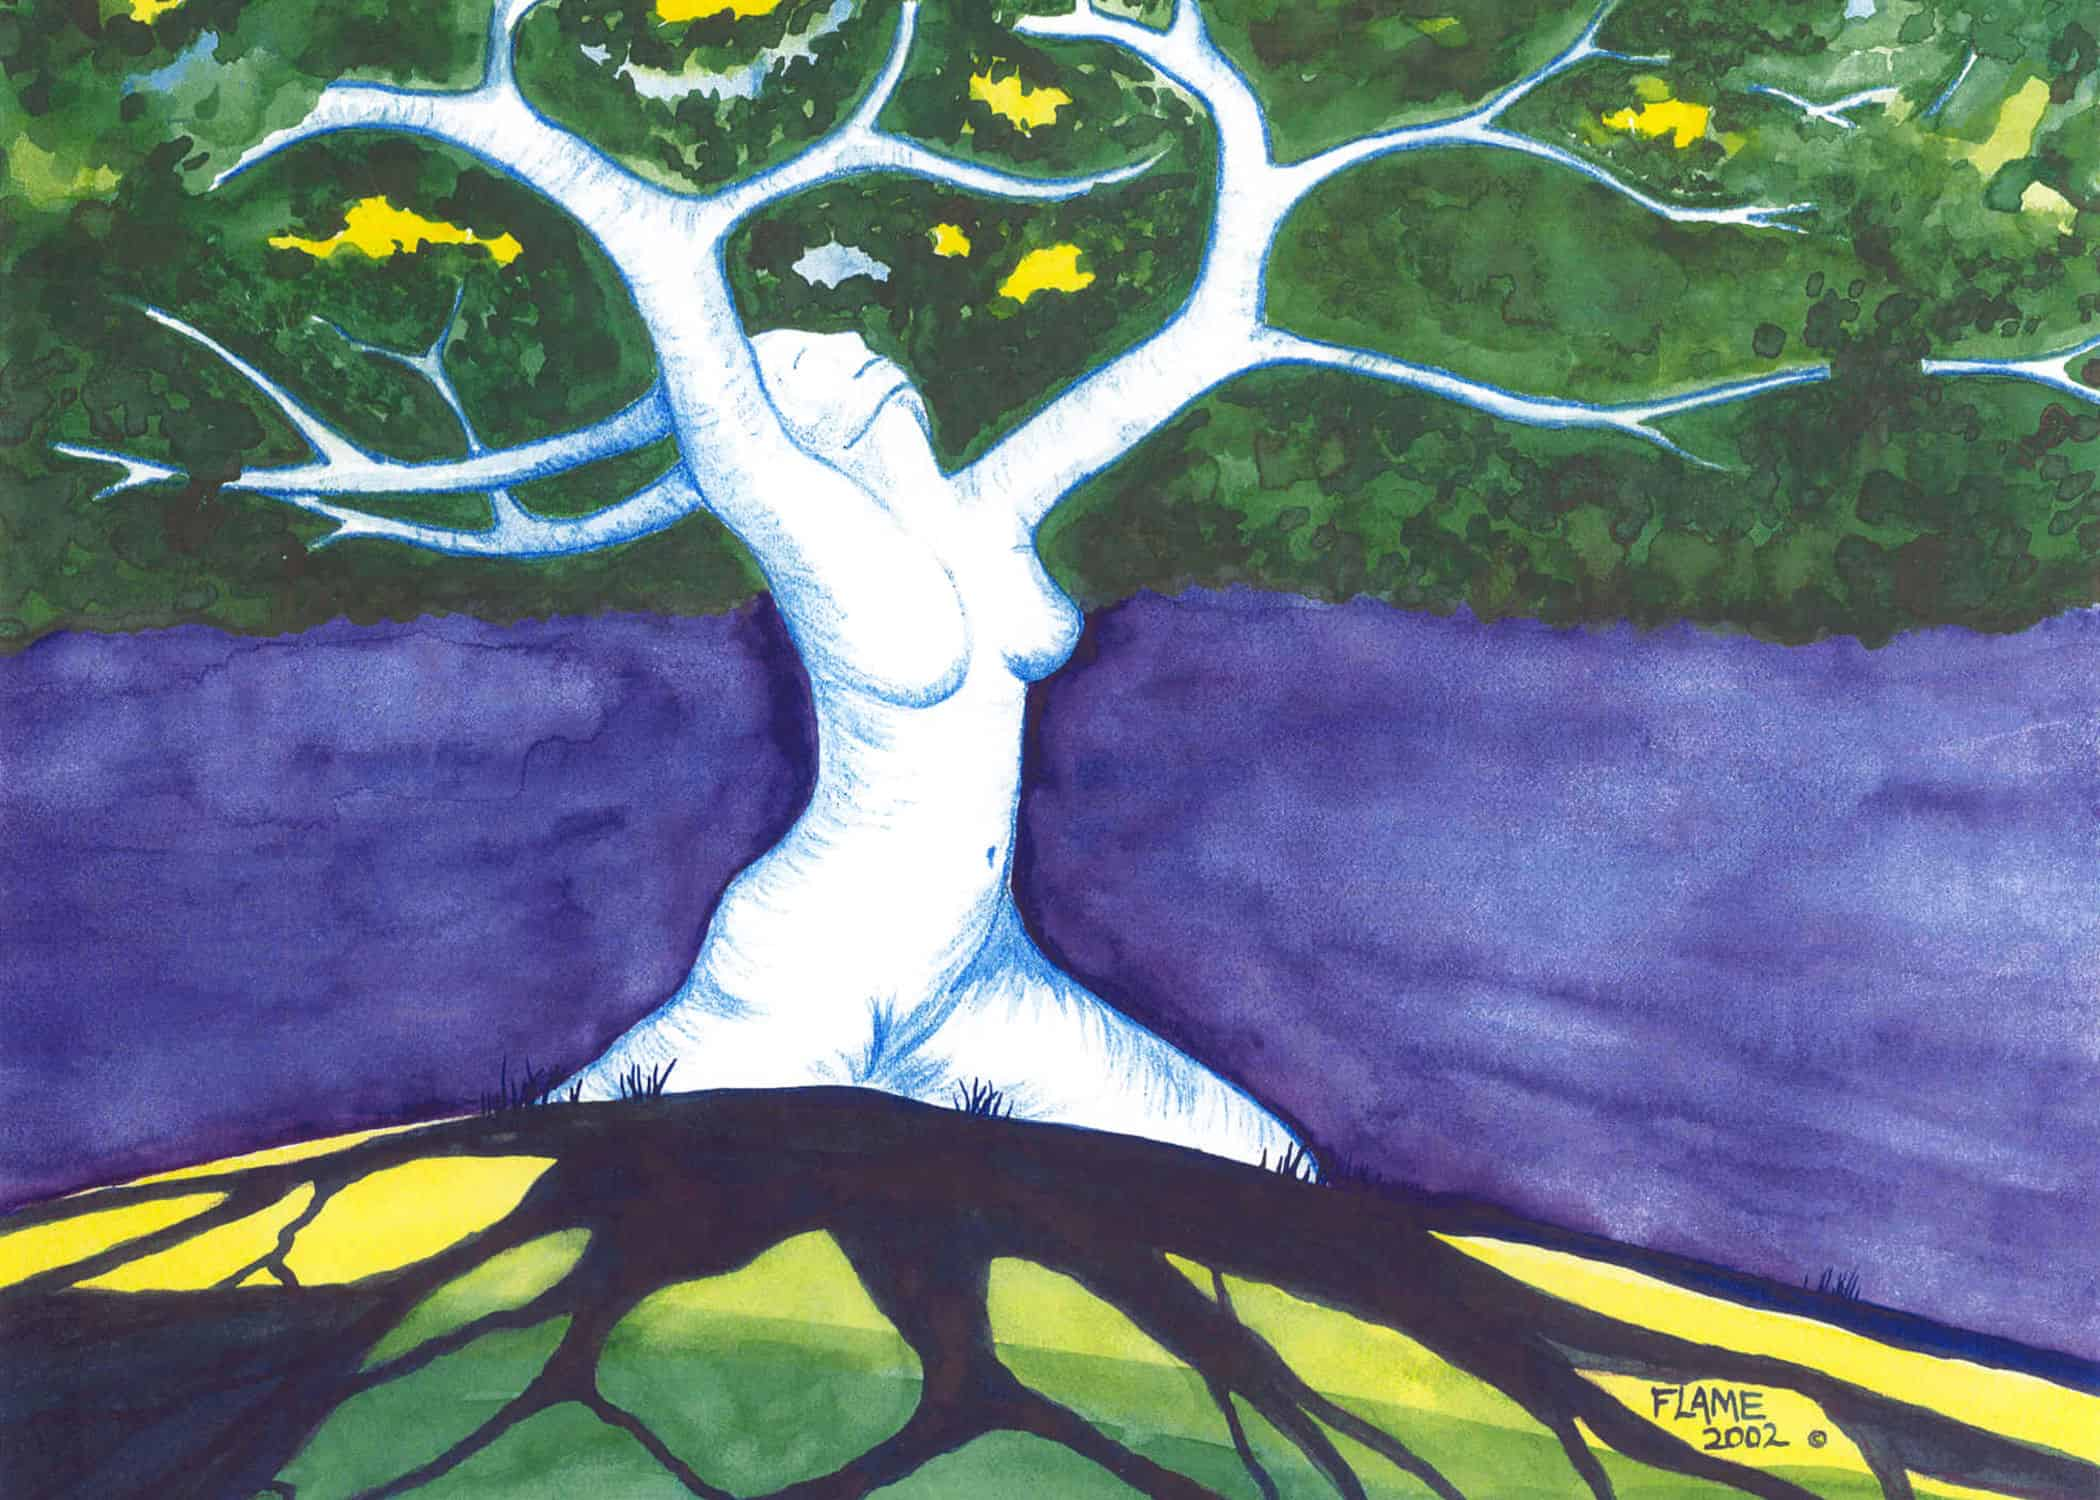 Tree of Life - Dryad reaches to the sky on a sunny, Spring day